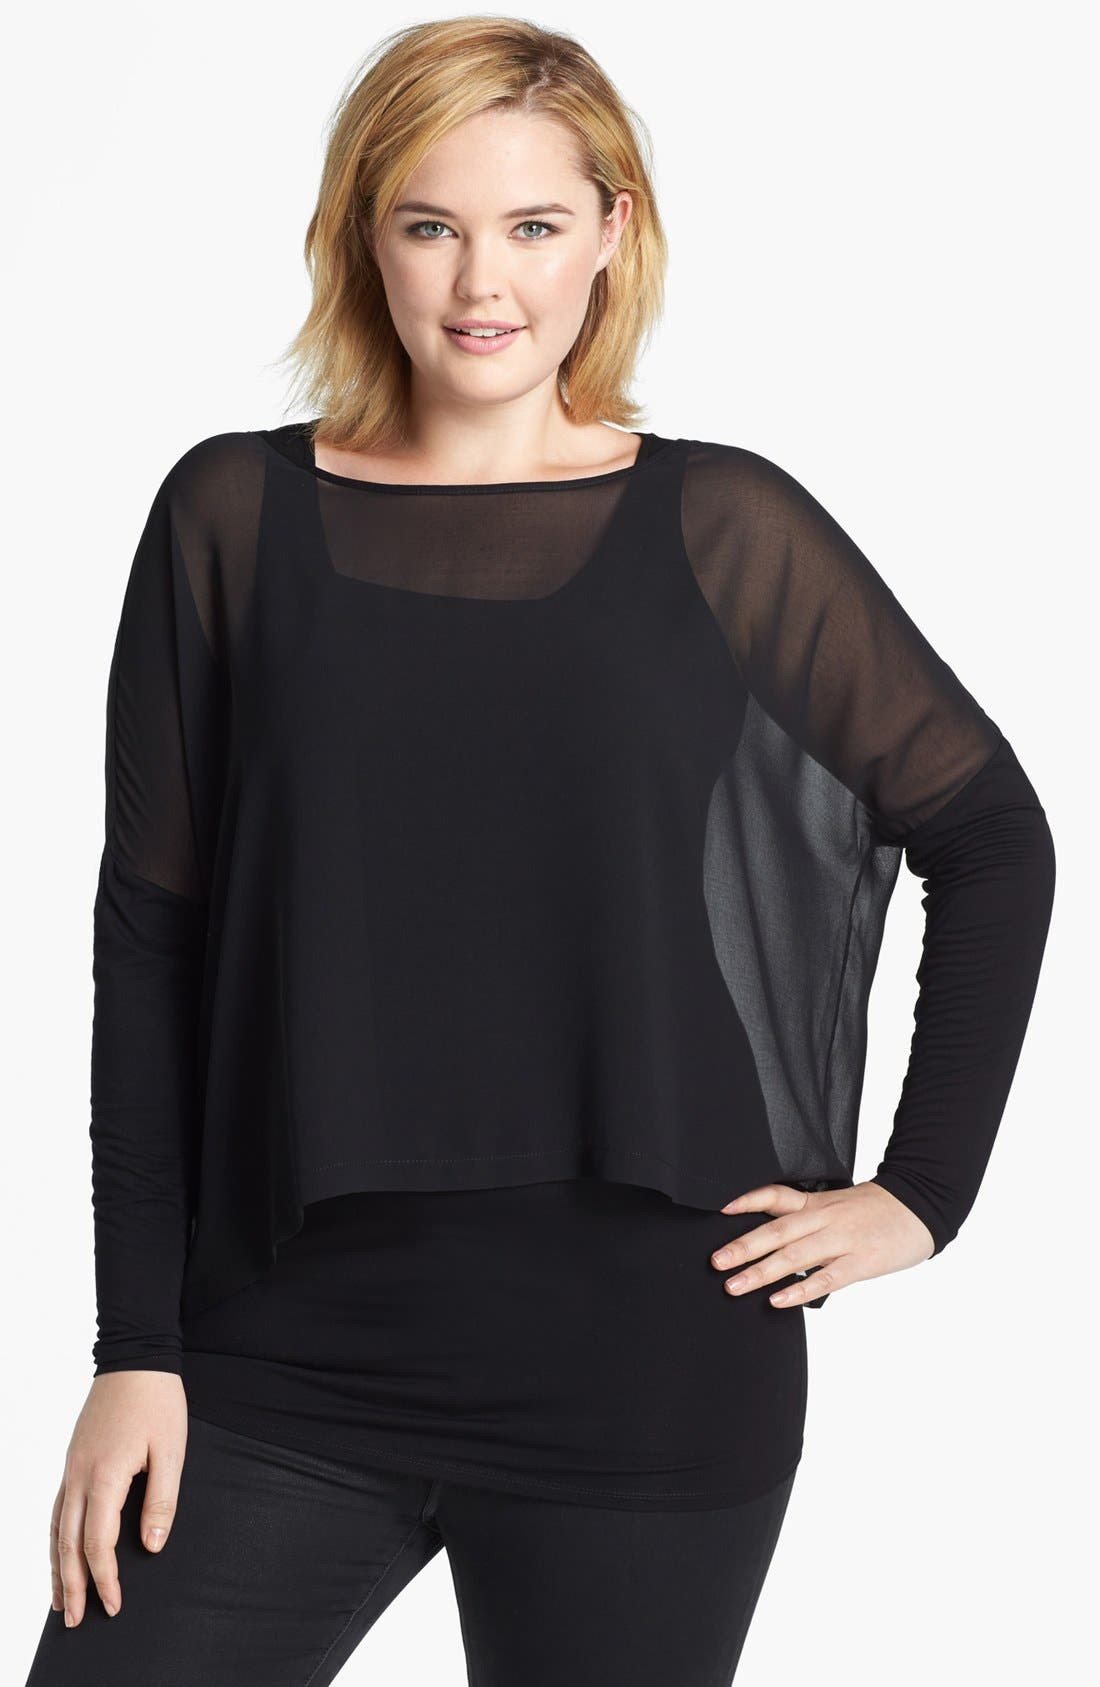 Alternate Image 1 Selected - Evans Double Layer Top (Plus Size)